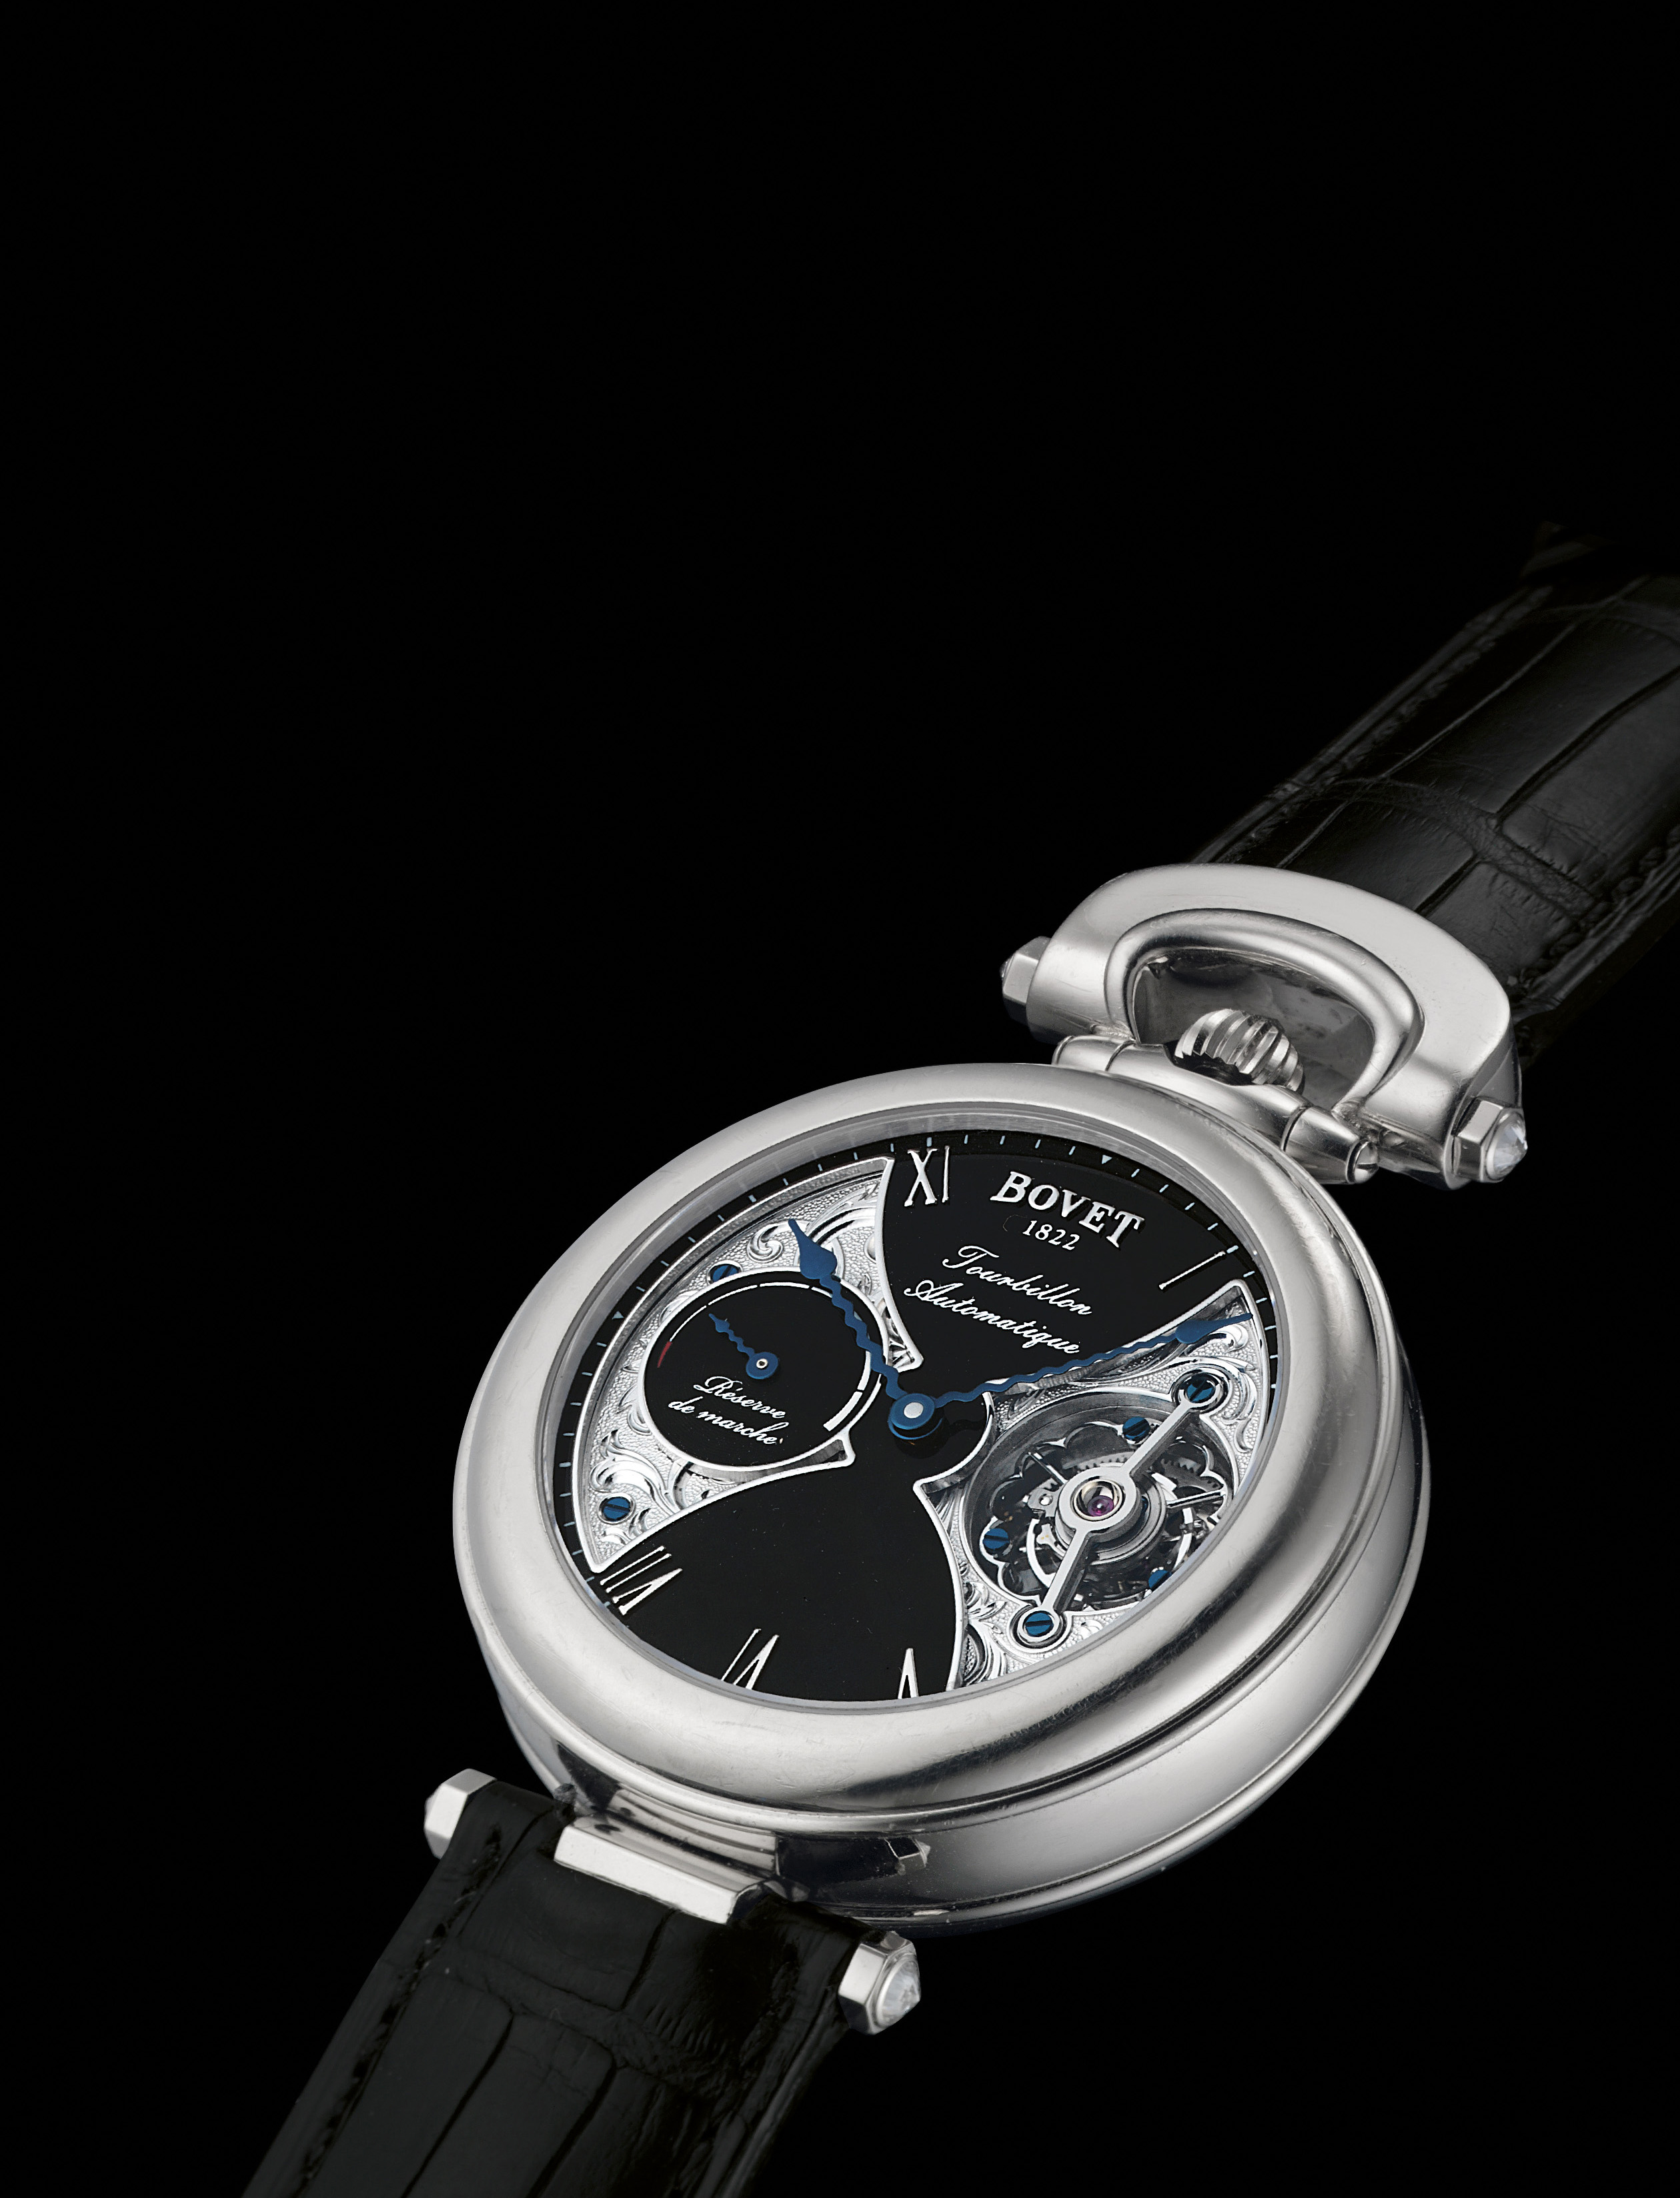 BOVET. A FINE AND UNIQUE 18K WHITE GOLD AUTOMATIC TOURBILLON WRISTWATCH WITH POWER RESERVE, ORIGINAL CERTIFICATE AND BOX